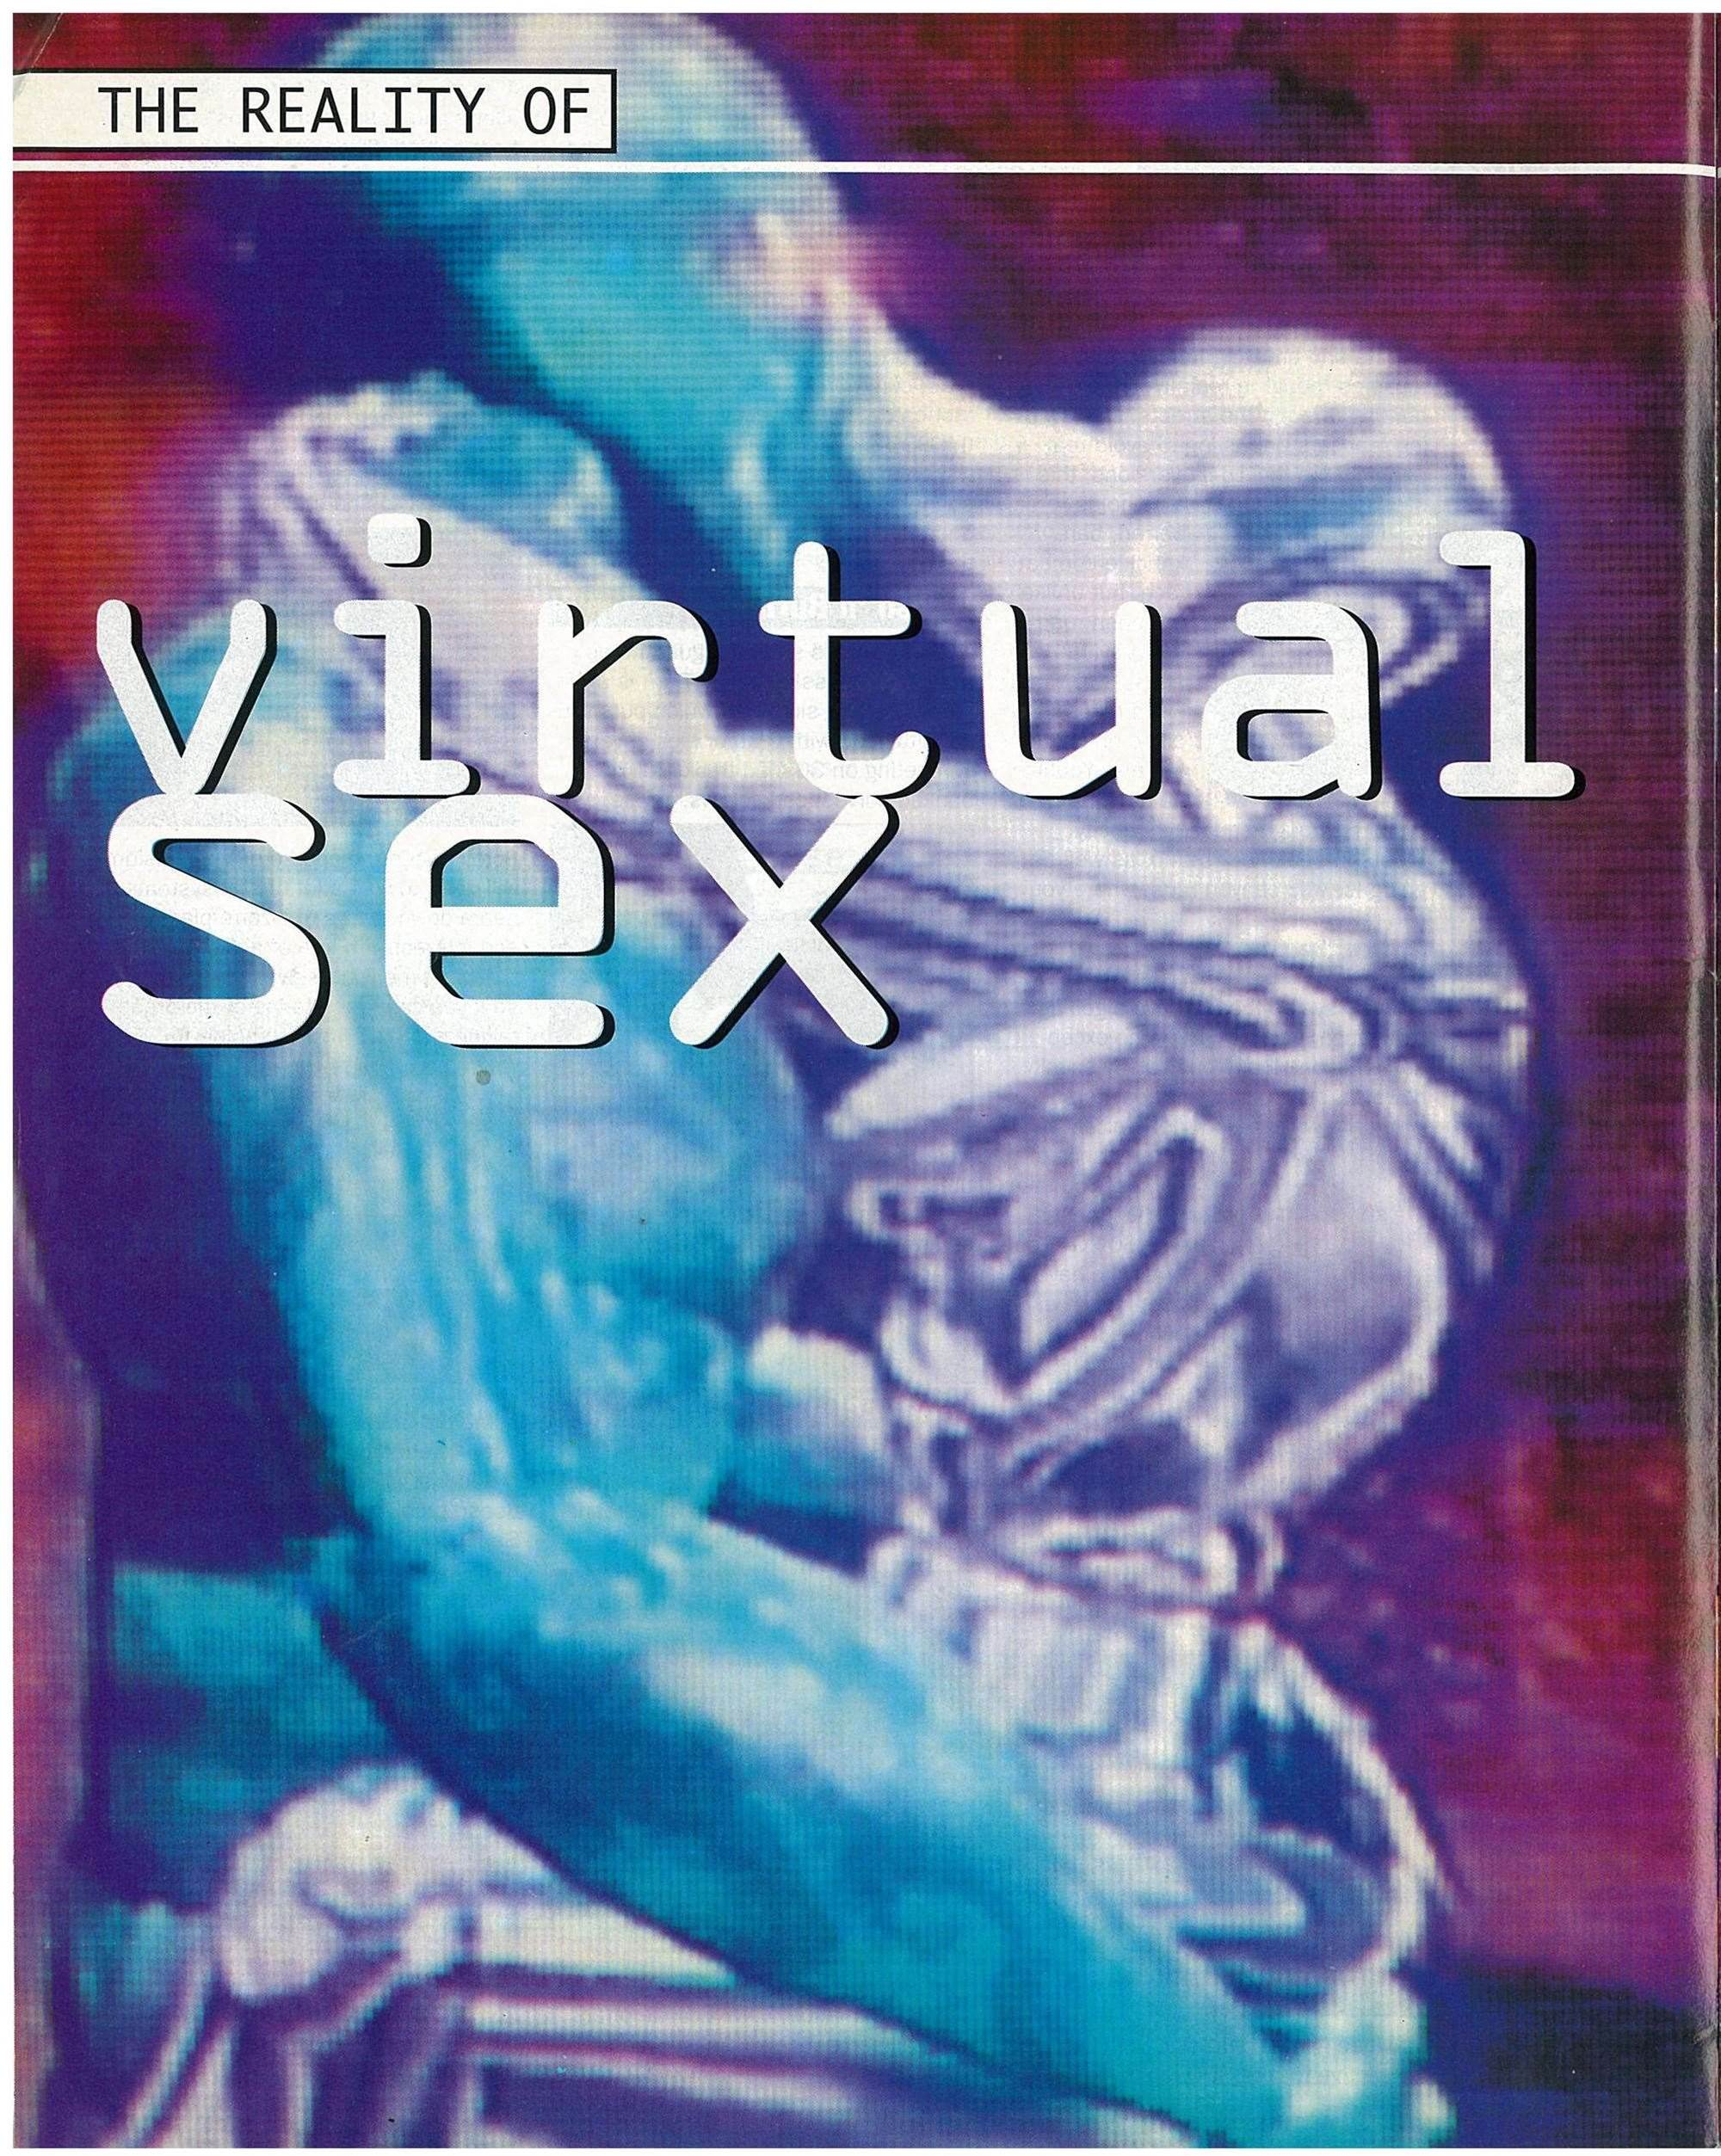 HINDSIGHT: Virtual Sex